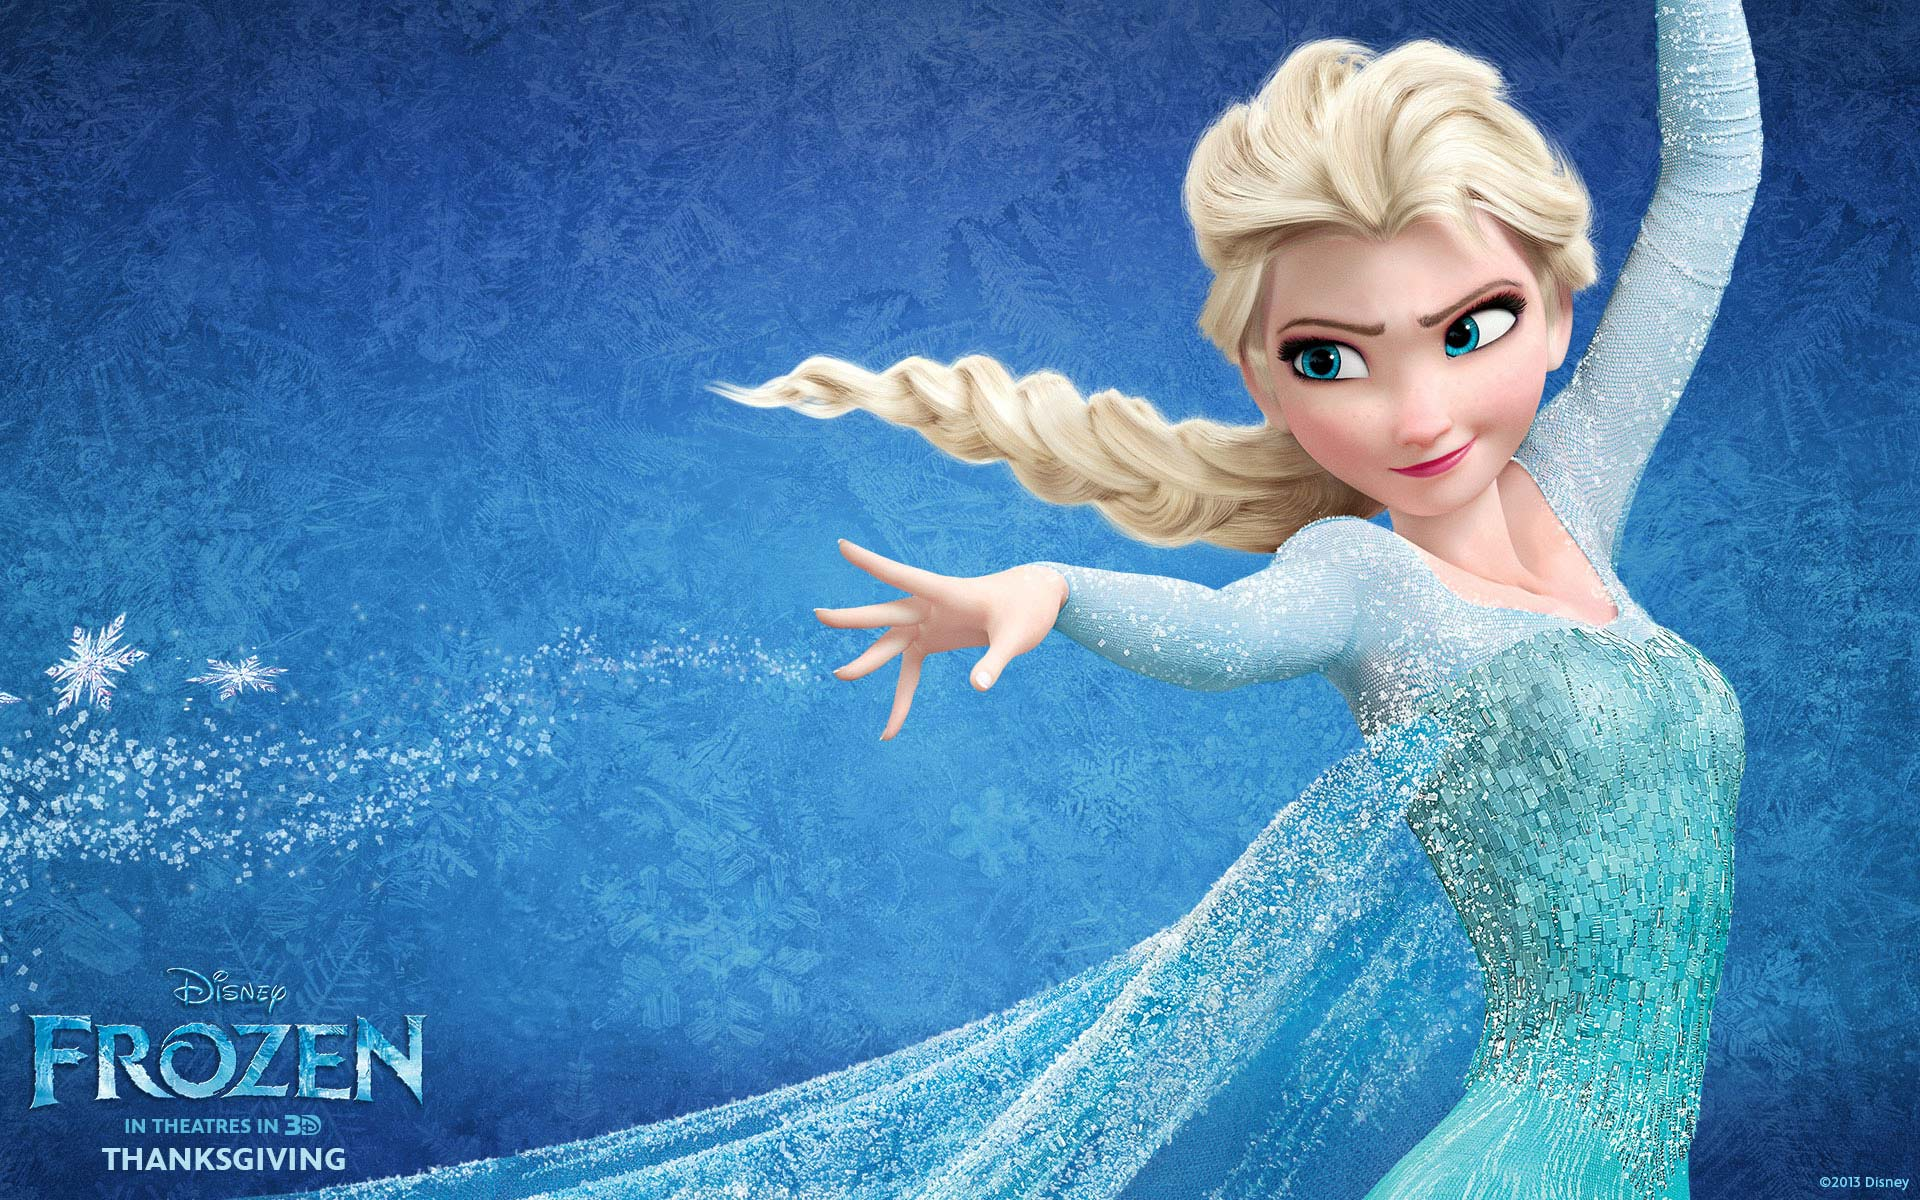 Disney FROZEN Wallpapers HD: Free HD FROZEN Movie Wallpapers ...